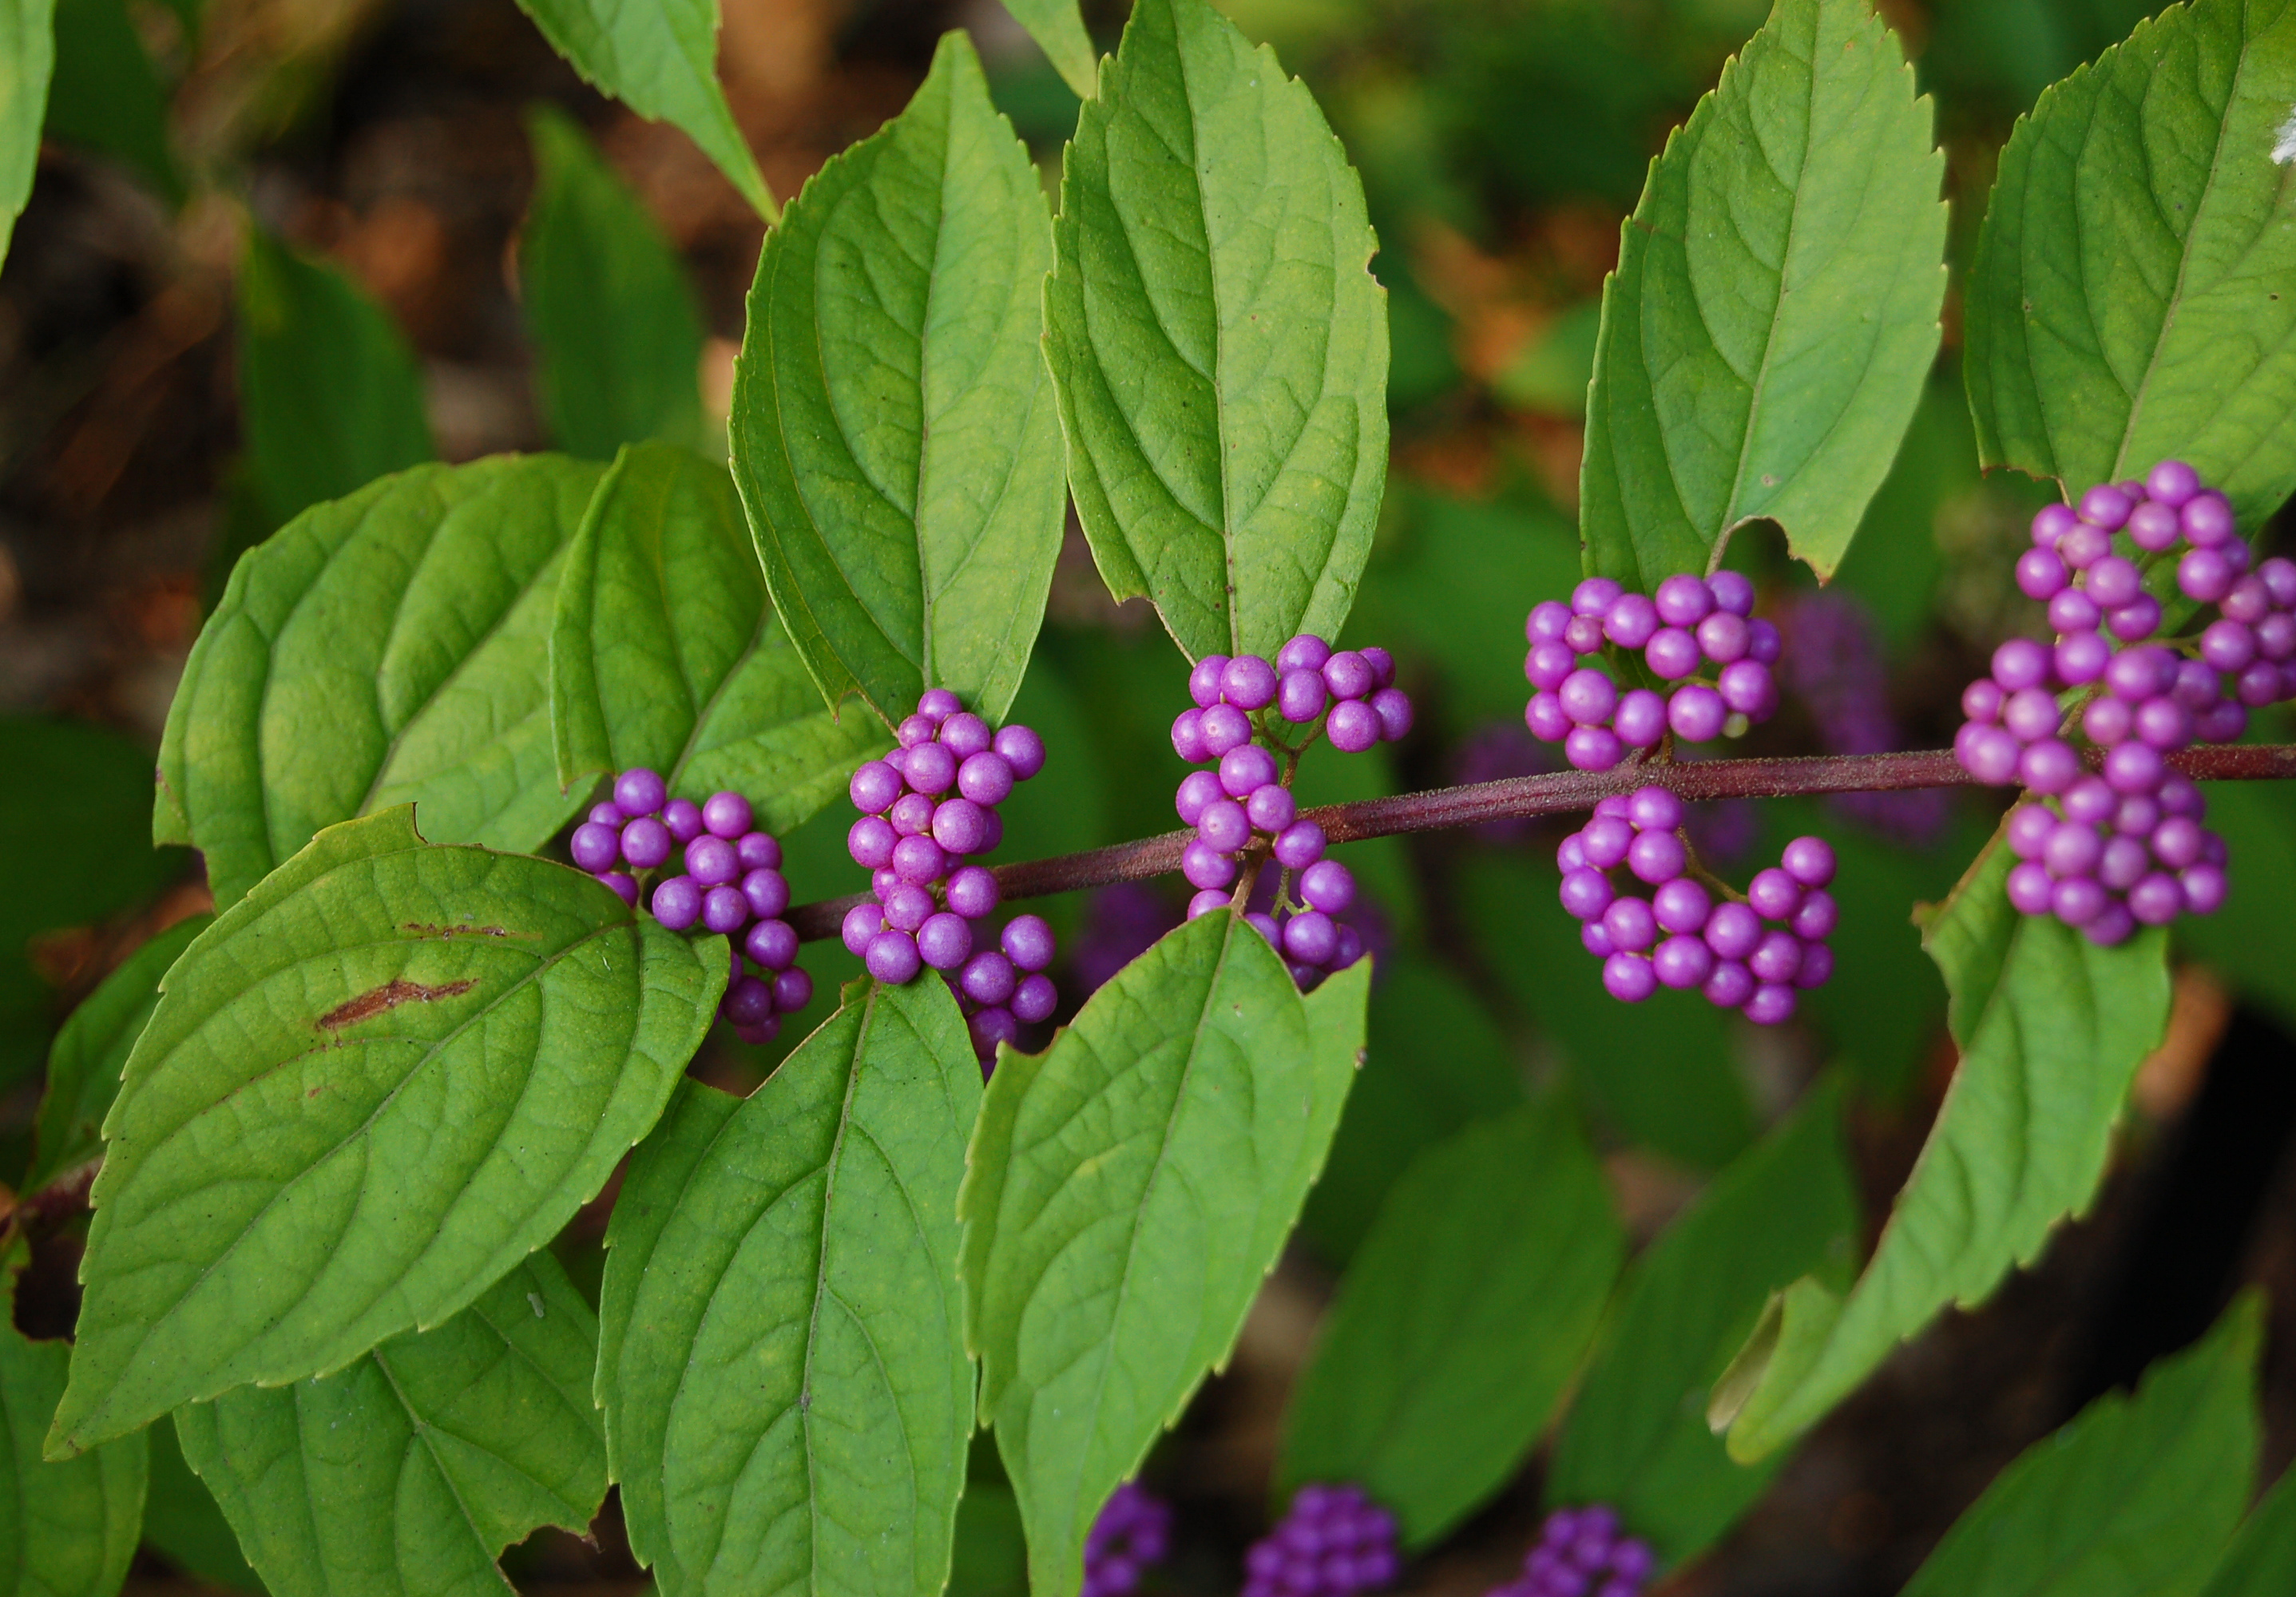 Purple_Beautyberry_Callicarpa_dichotoma_%27Early_Amethyst%27_Berries_Closeup_2875px.jpg